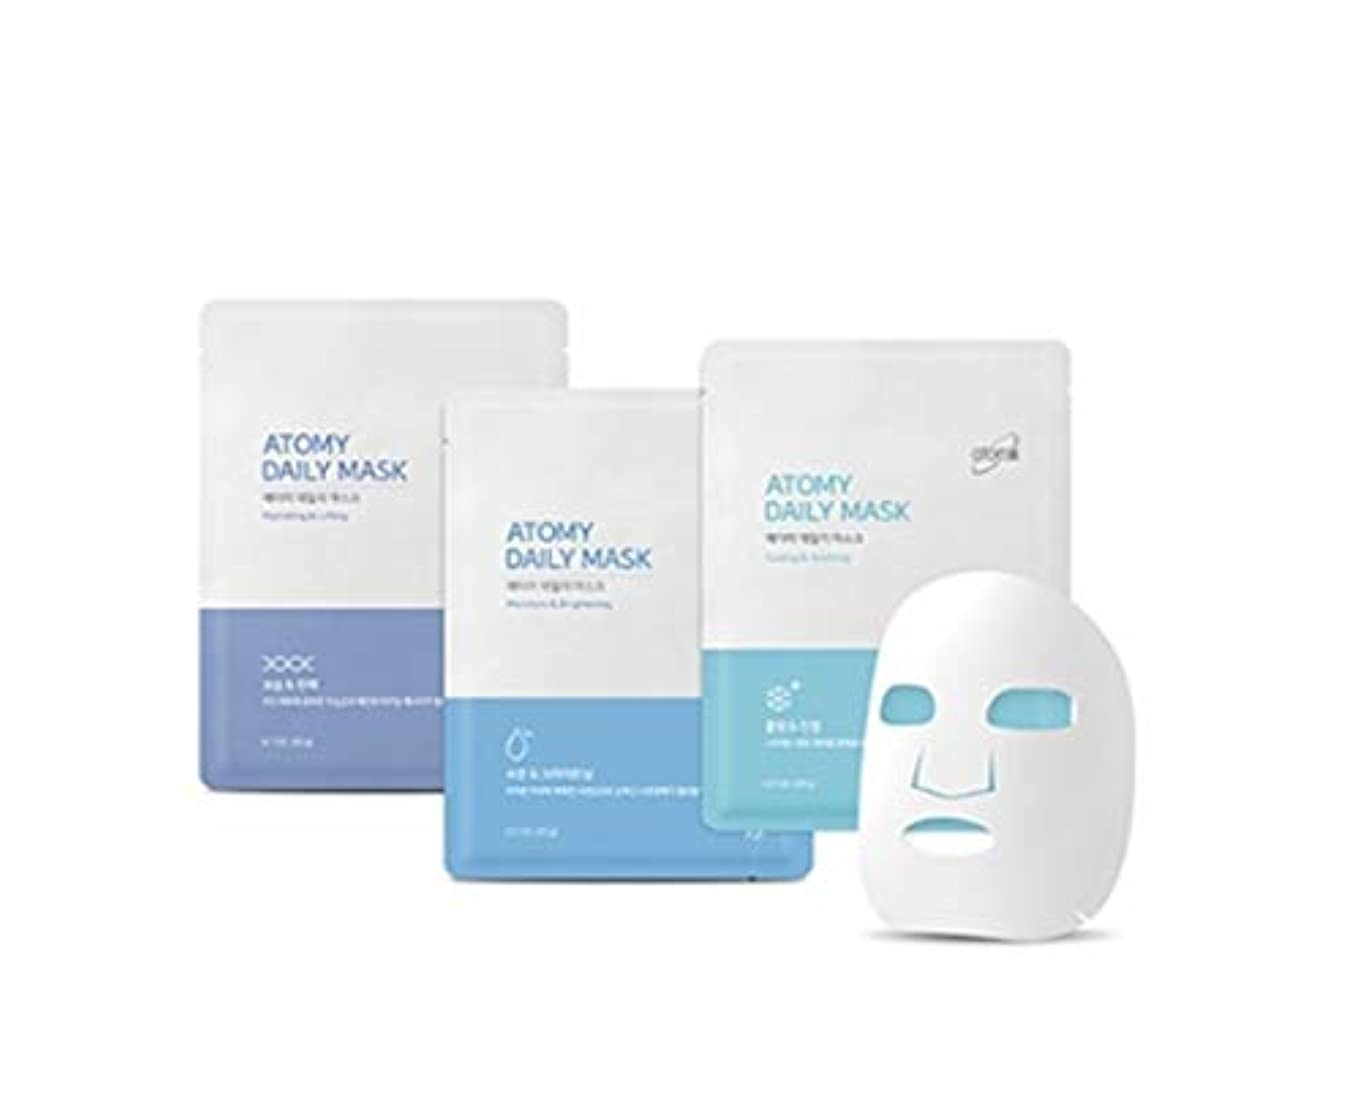 イブニングずるいはっきりしない[NEW] Atomy Daily Mask Sheet 3 Type Combo 30 Pack- Moisture & Brightening,Cooling & Soothing,Moisture & Brightening...